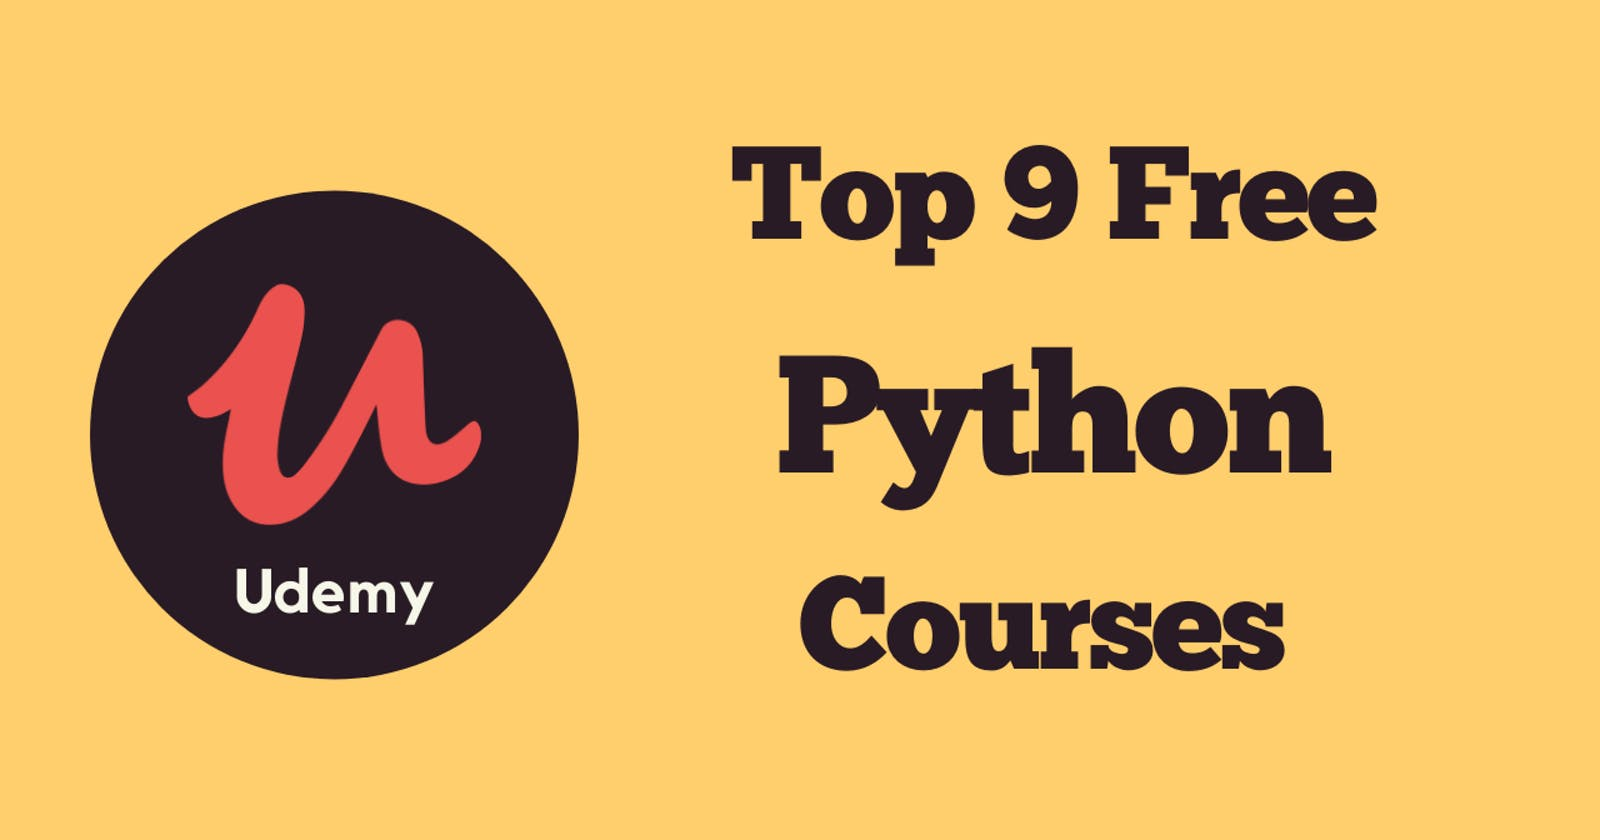 Top 9 Free Udemy Python Courses